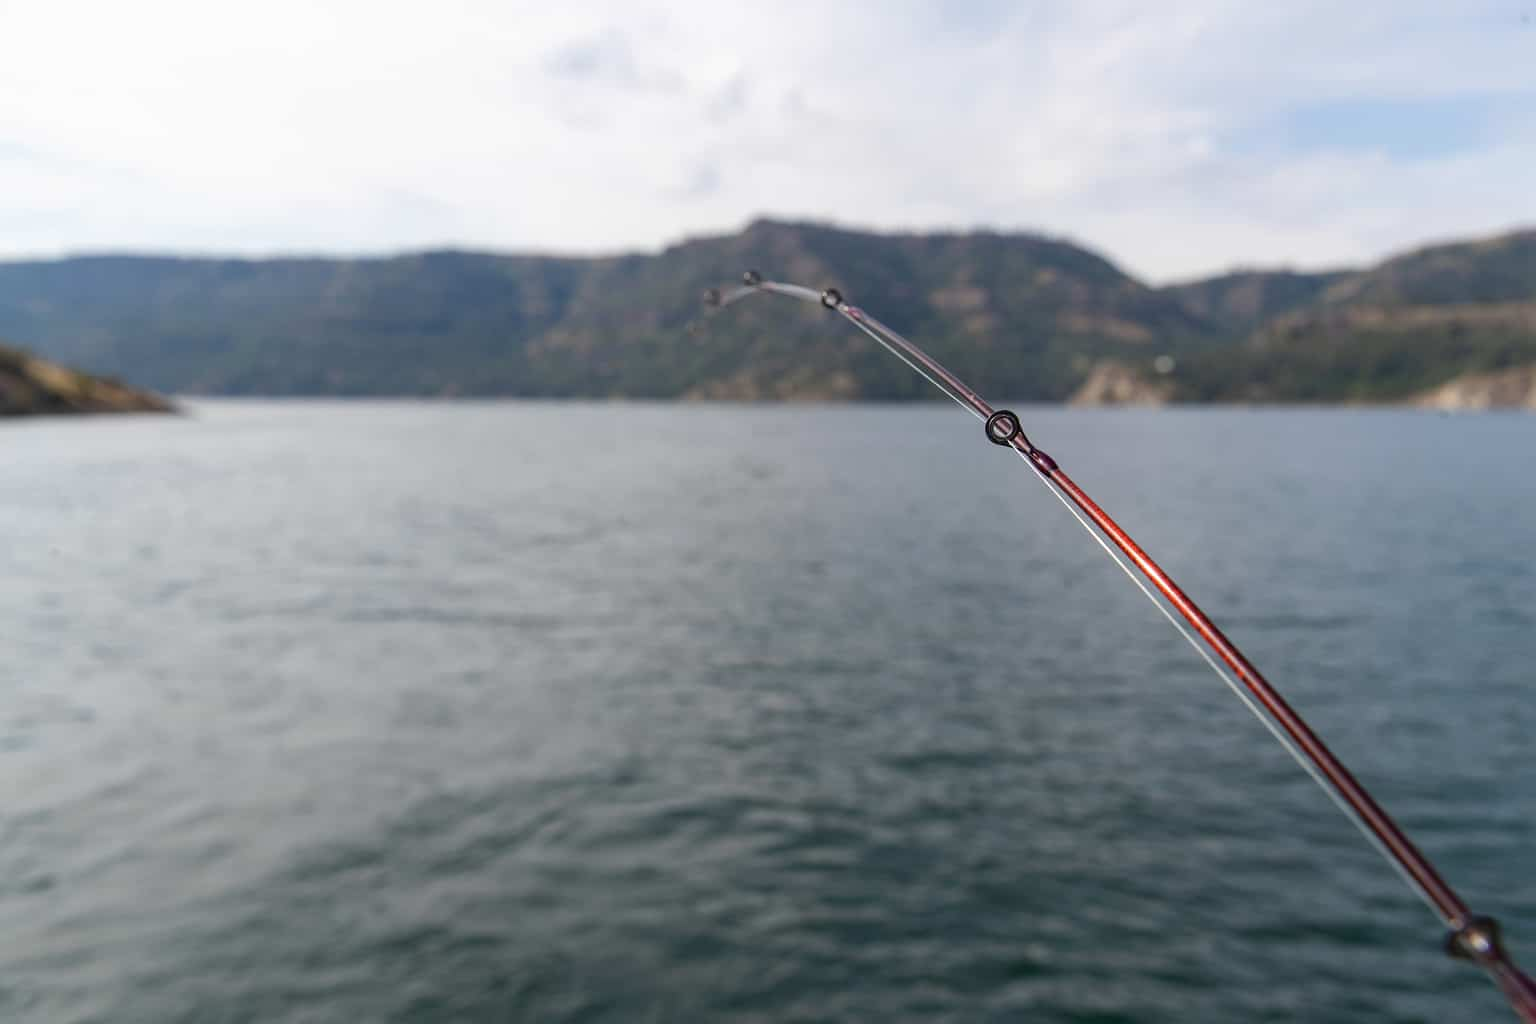 A fishing rod in water at Lake Roosevelt, a giant reservoir in Washington.